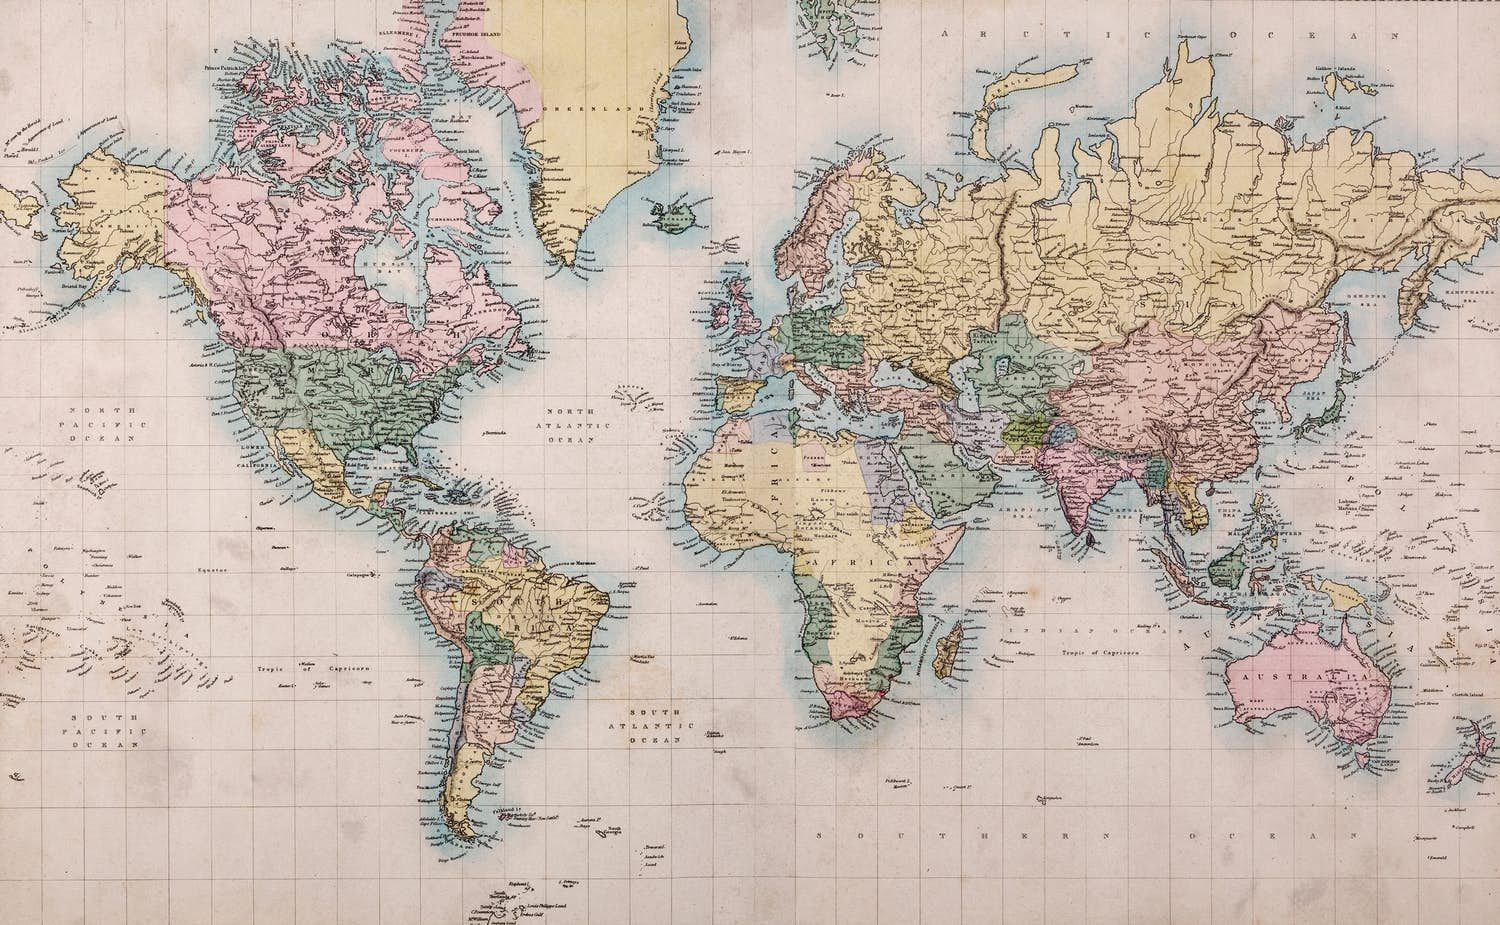 Vintage world map wallpaper from happywall purdue ii vintage world map wallpaper from happywall gumiabroncs Gallery